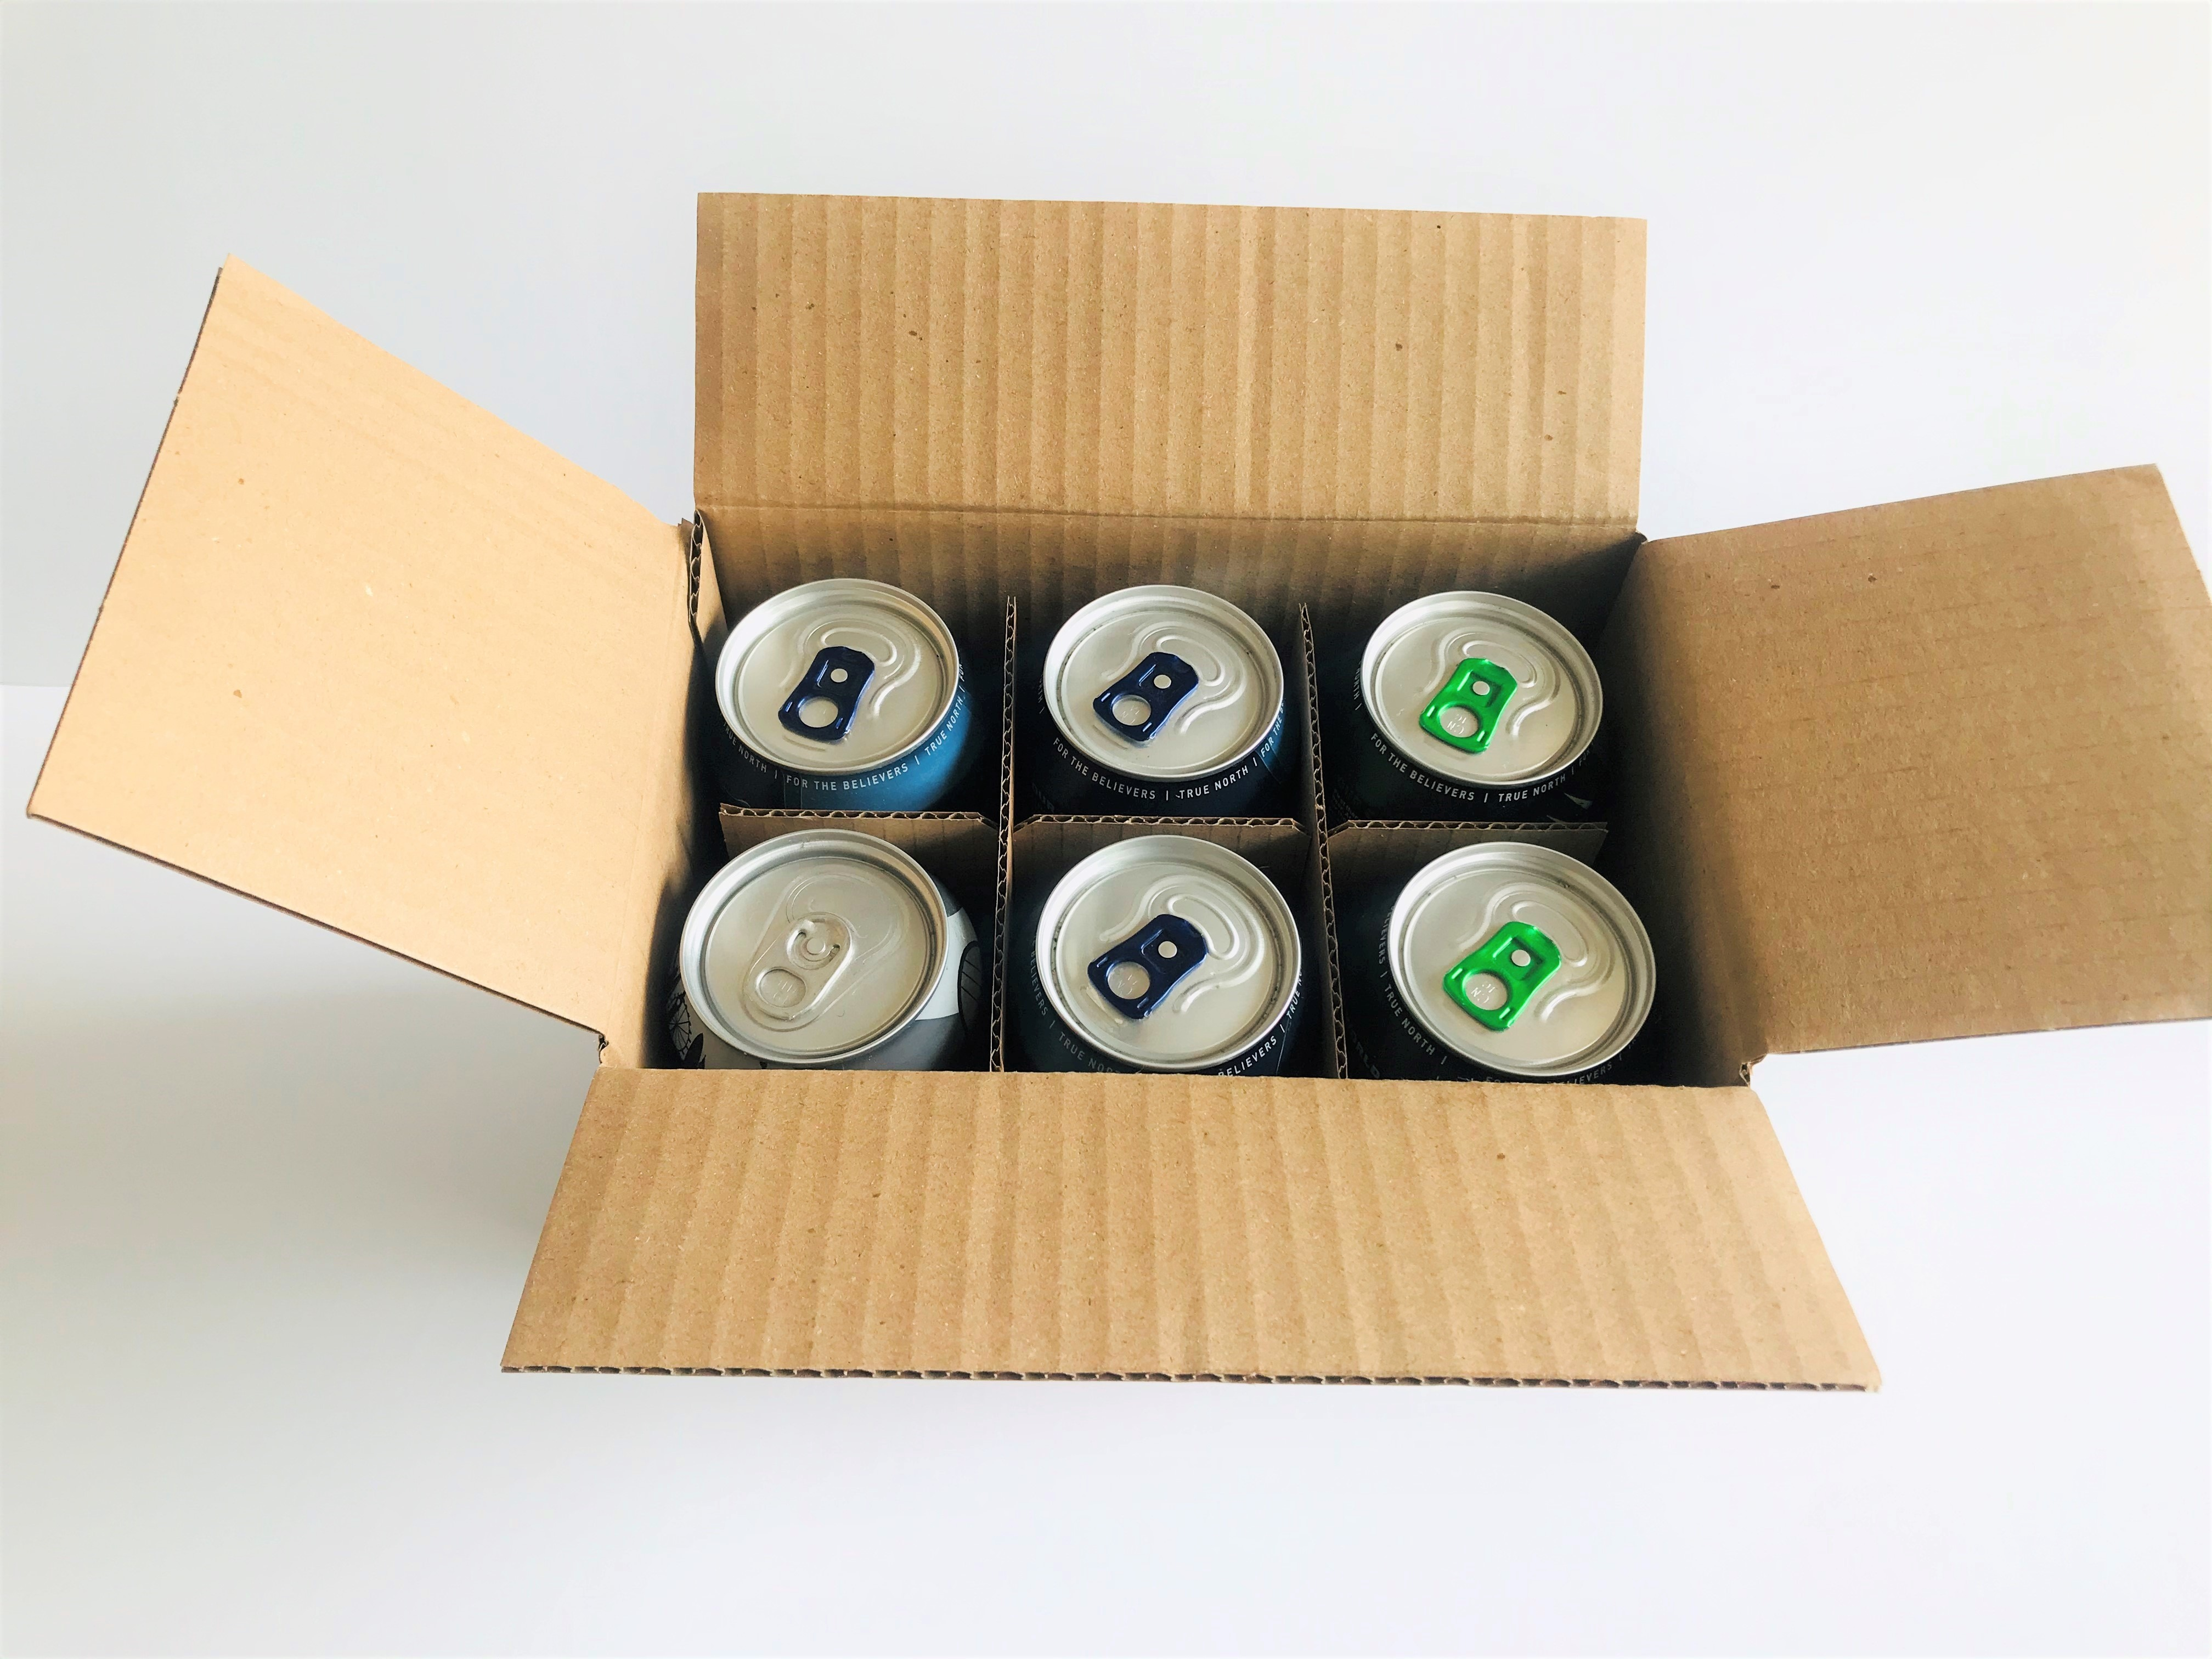 6 X 440ml Beer And Cider Can Shipping Box Db644 Beer And Cider Can Carrier Box Packaging For Retail Uk 6 X 440ml Beer And Cider Can Shipping Box Db644